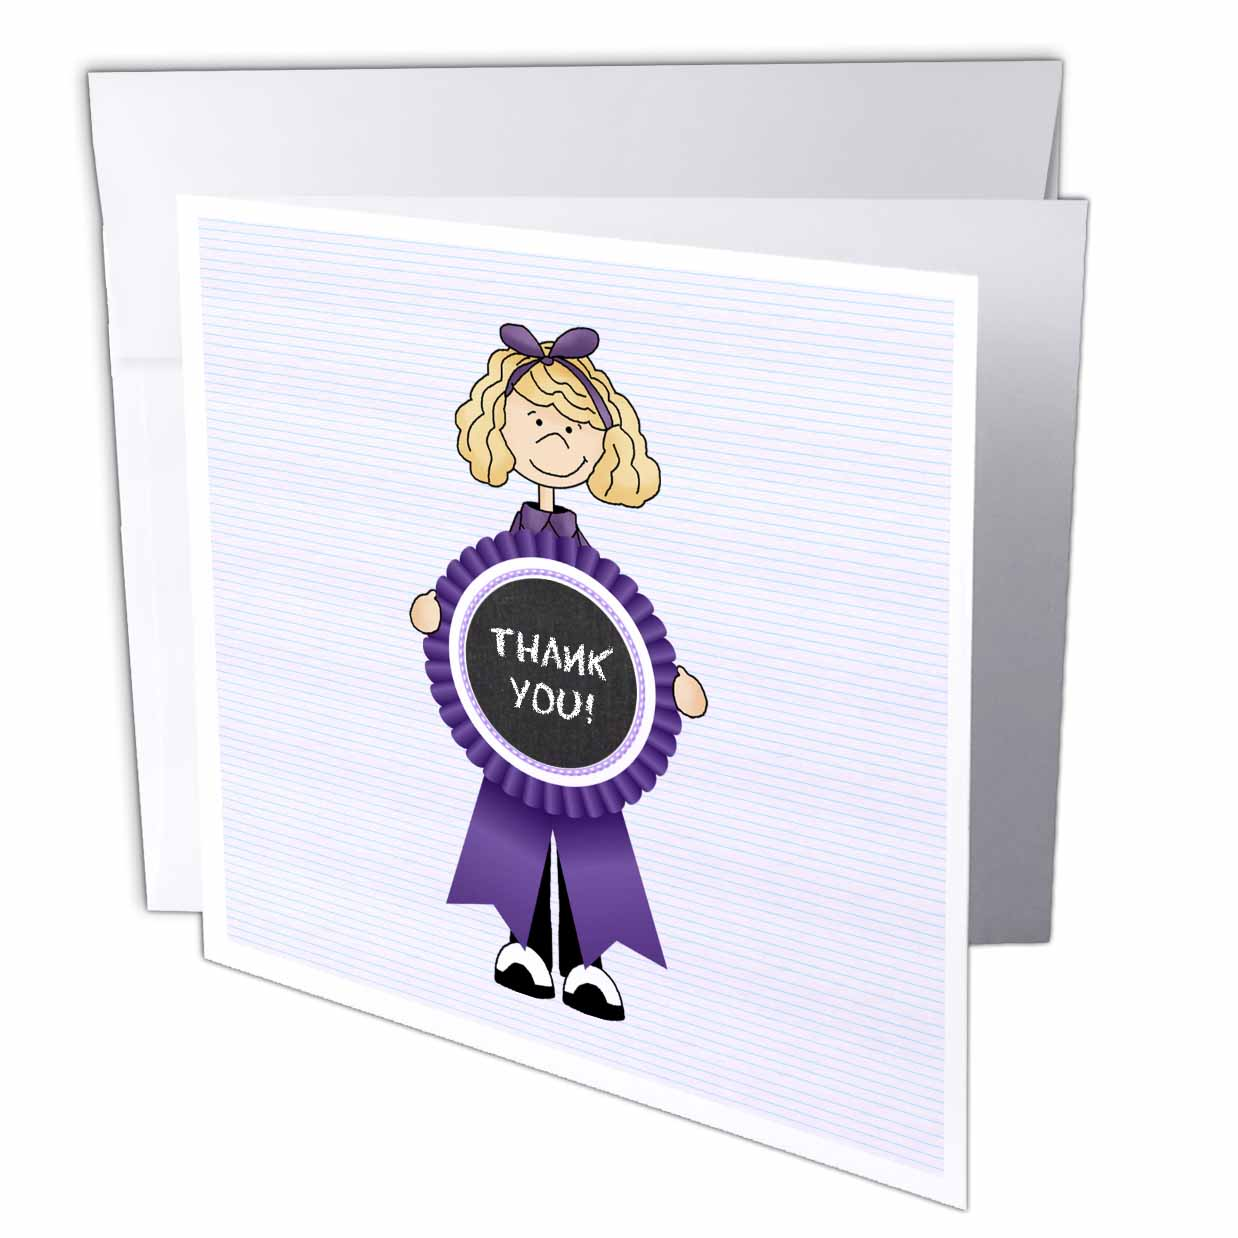 3dRose Little Blonde Girl with Purple THANK YOU Ribbon, Greeting Cards, 6 x 6 inches, set of 12